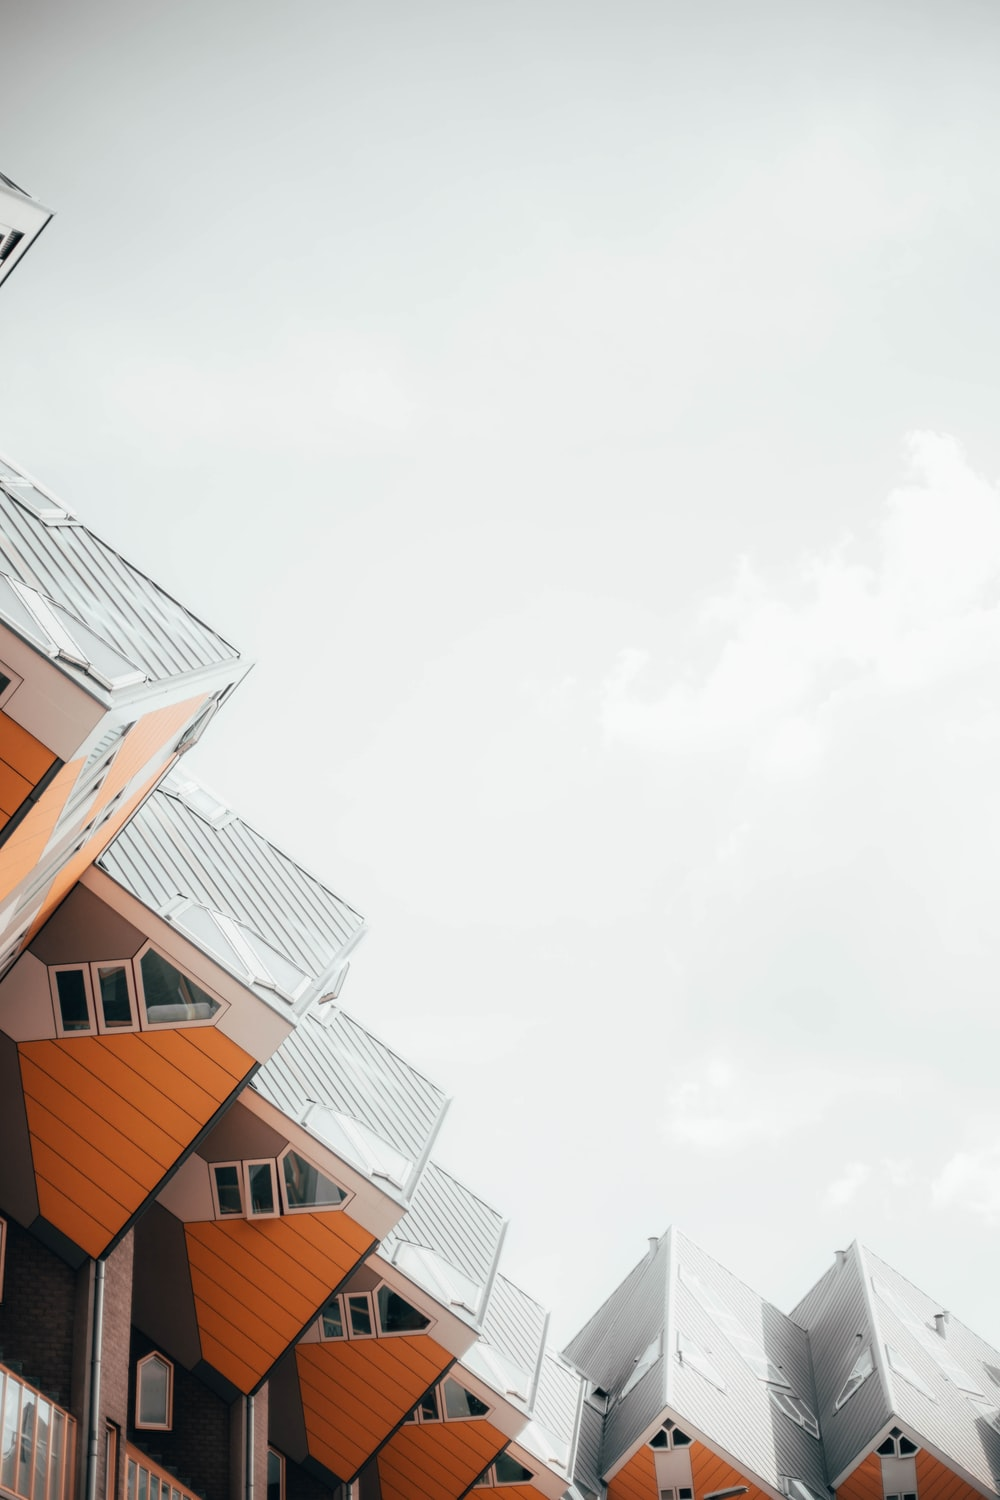 white and orange wooden houses